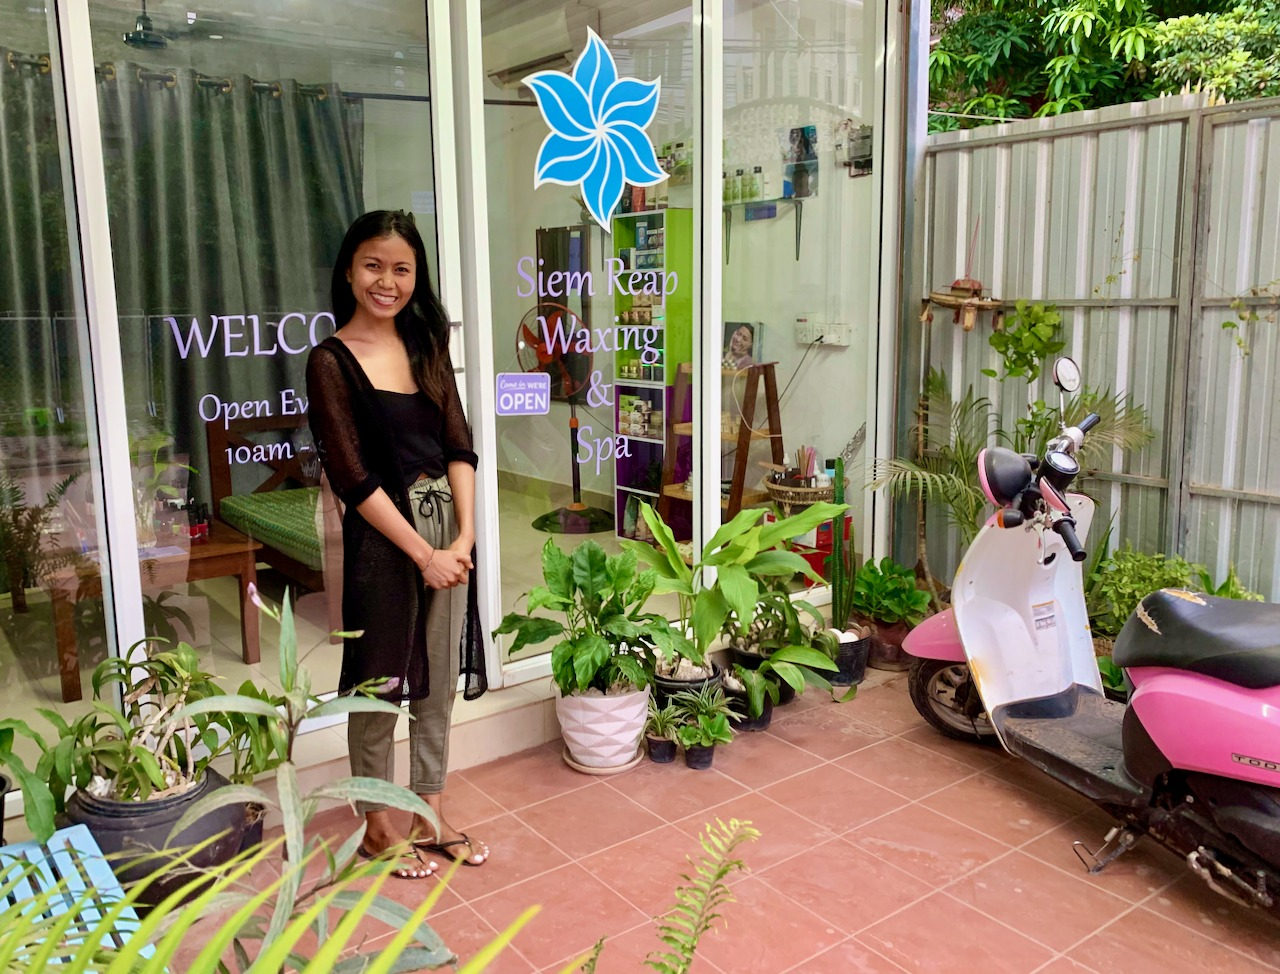 Siem Reap Waxing and Spa Sustainable Tourism